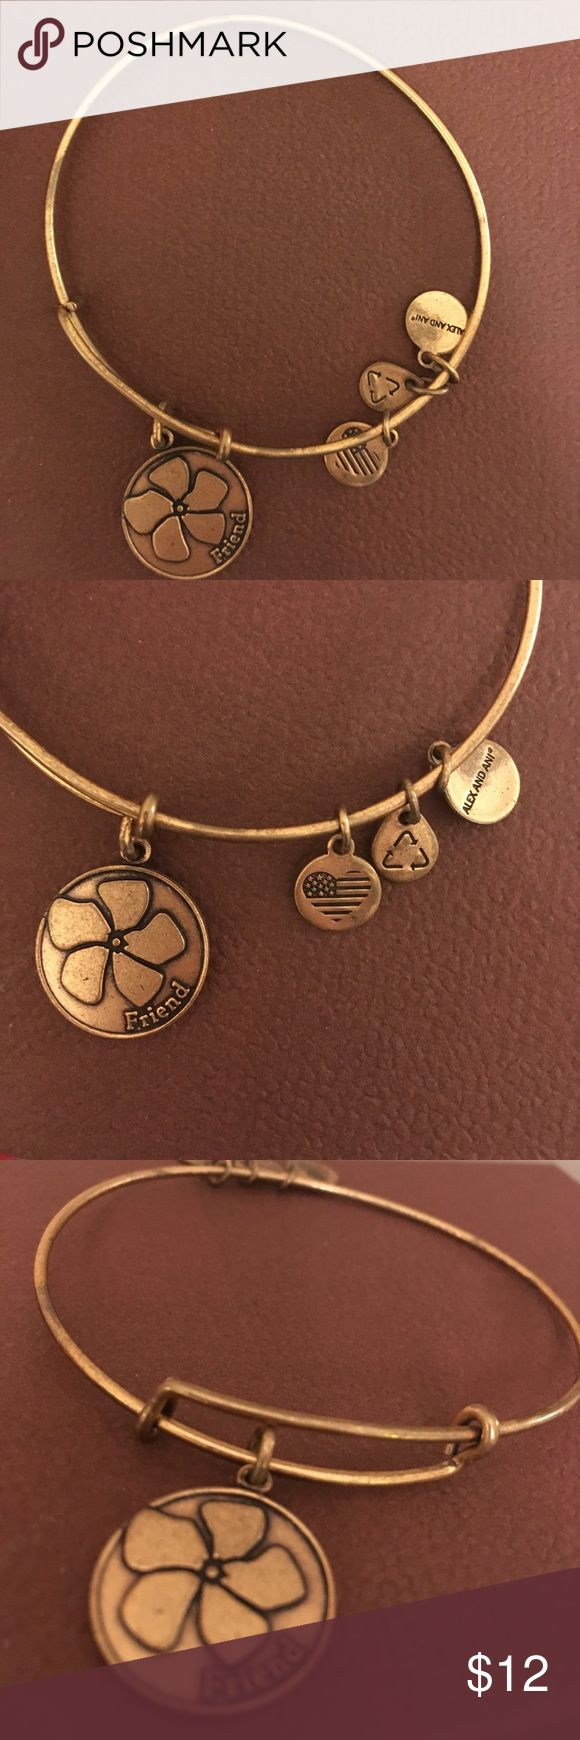 Alex And Ani Friend bracelet Never worn Alex and Ani friend bracelet. Retails for $24. Expandable wire bangle bracelet featuring oval shaped friend charm and three smaller charms. Alex & Ani Jewelry Bracelets